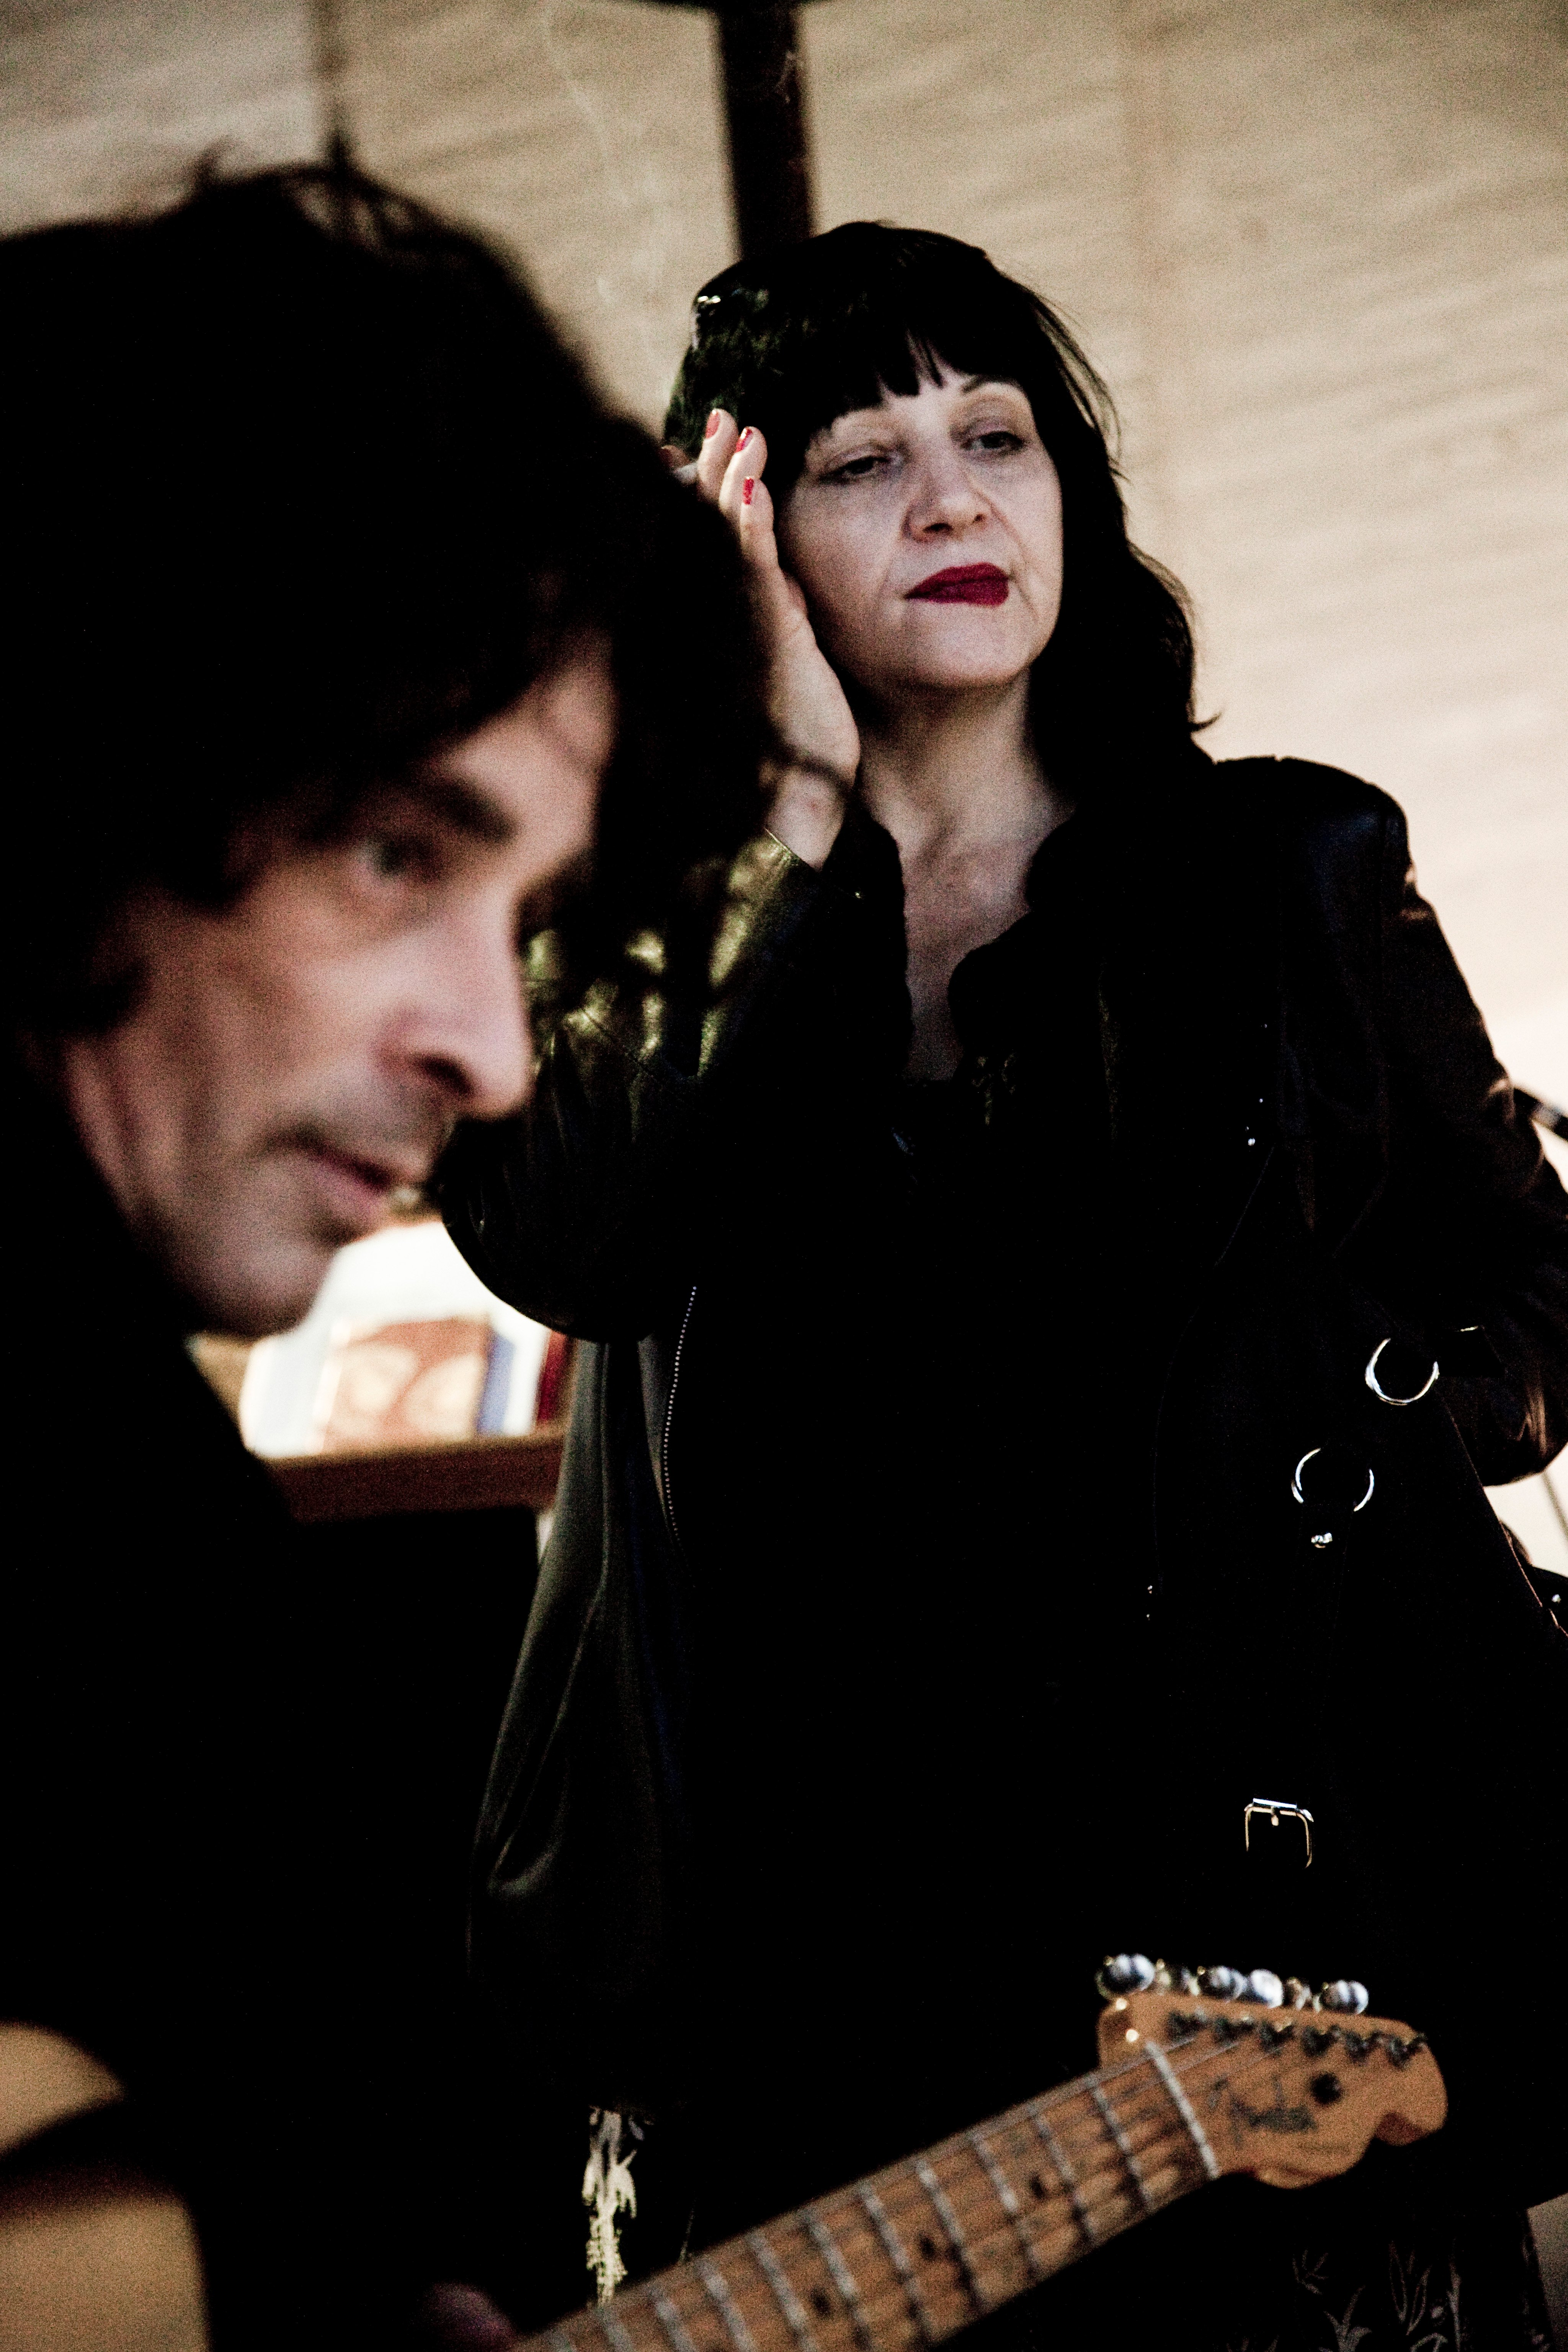 Lydia Lunch's Putan Club - Theatre Garonne